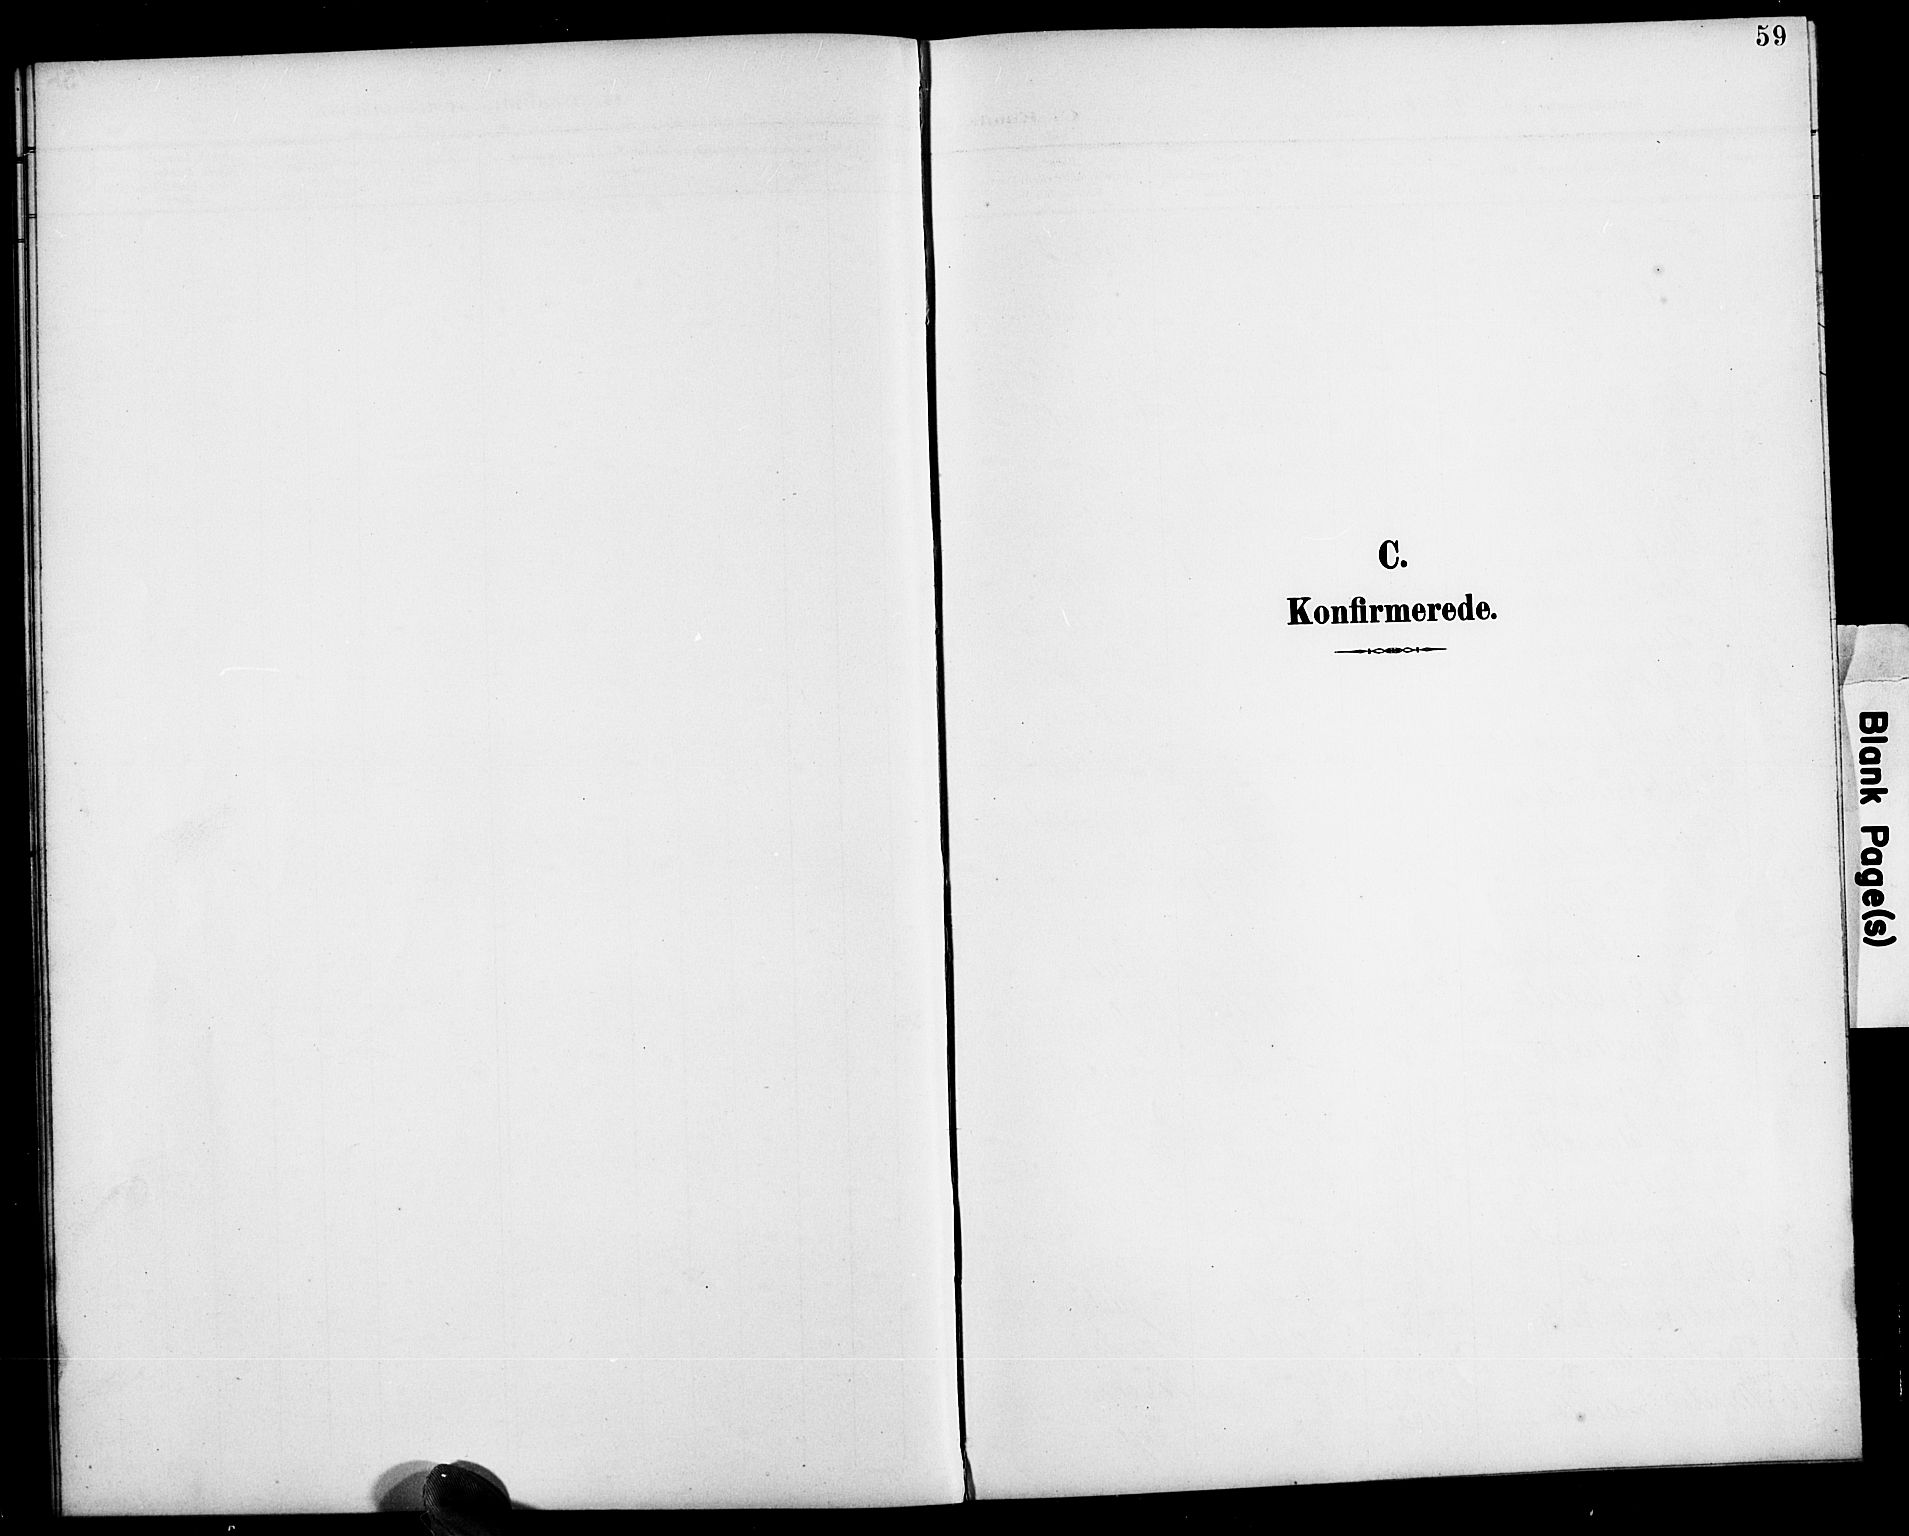 SAK, Herefoss sokneprestkontor, F/Fb/Fbb/L0003: Parish register (copy) no. B 3, 1892-1917, p. 59